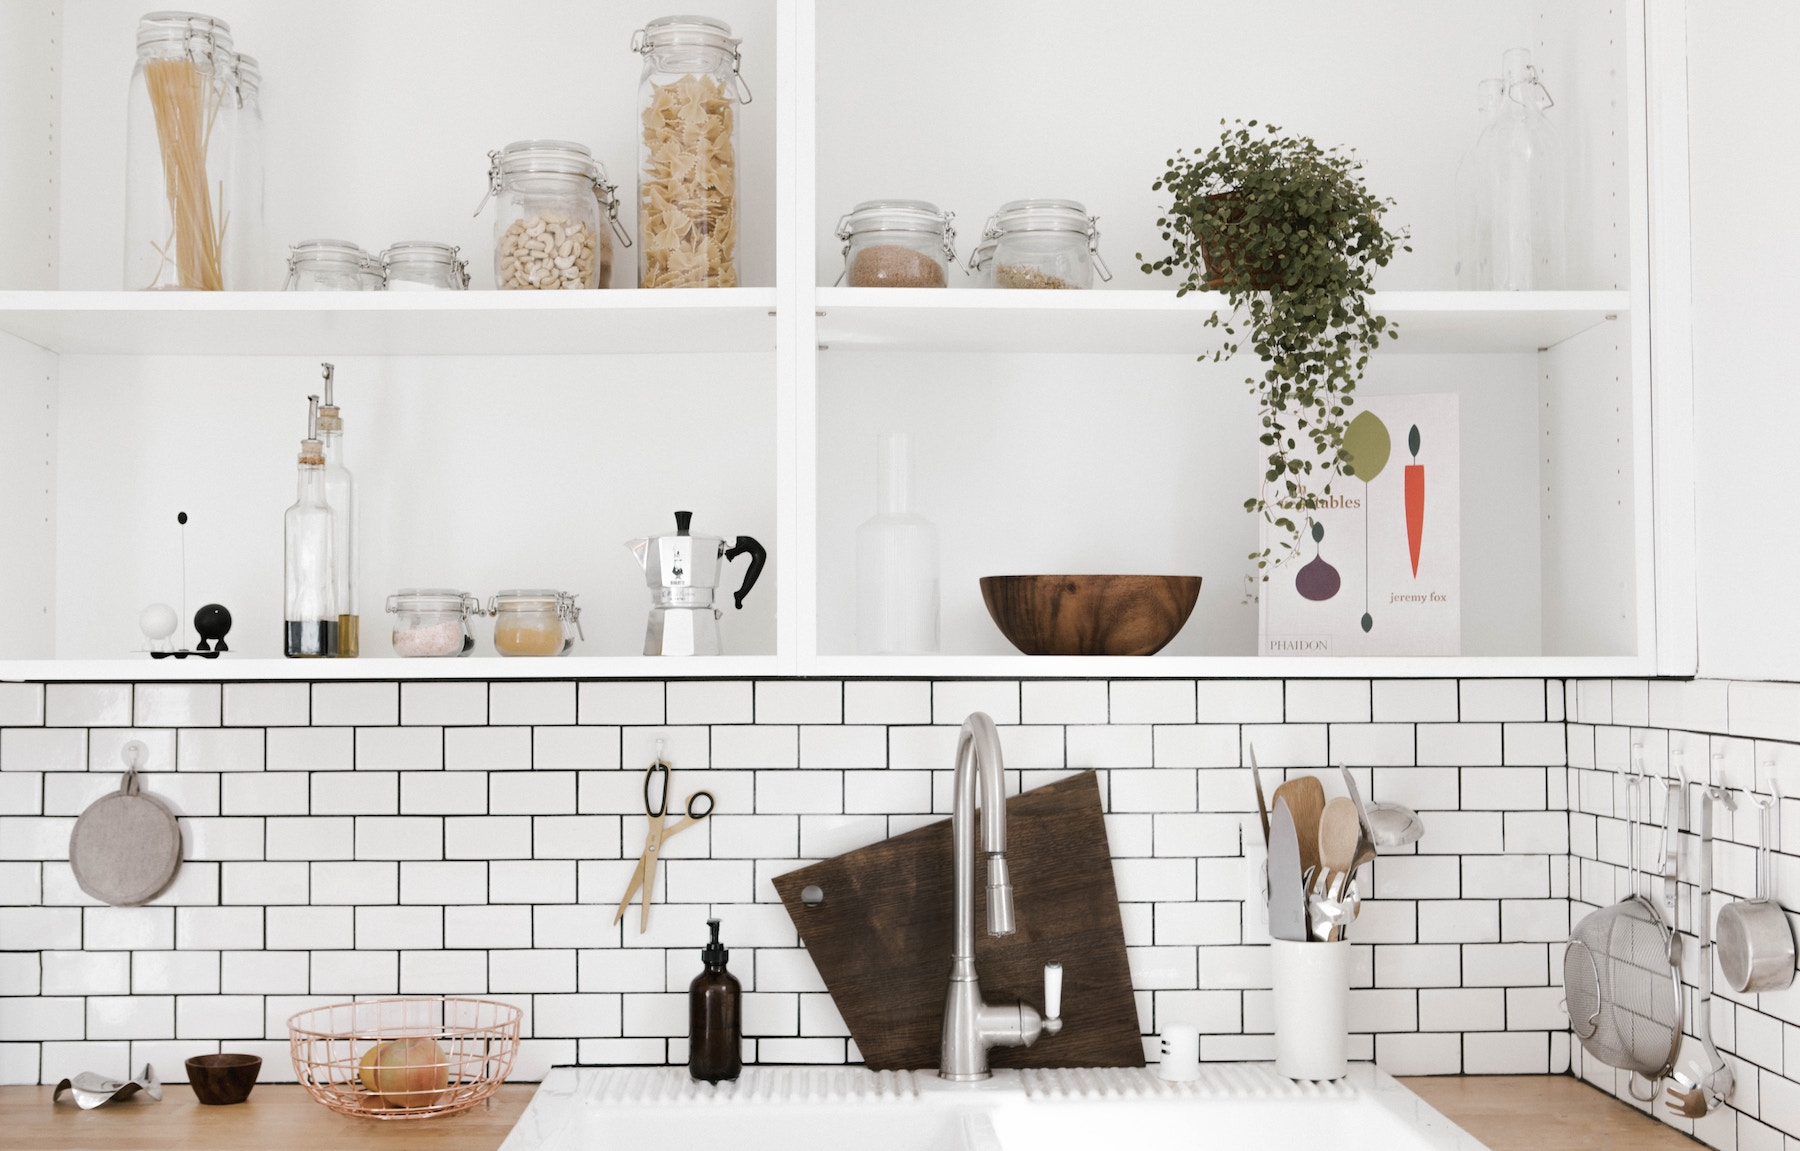 White kitchen sink with open shelving